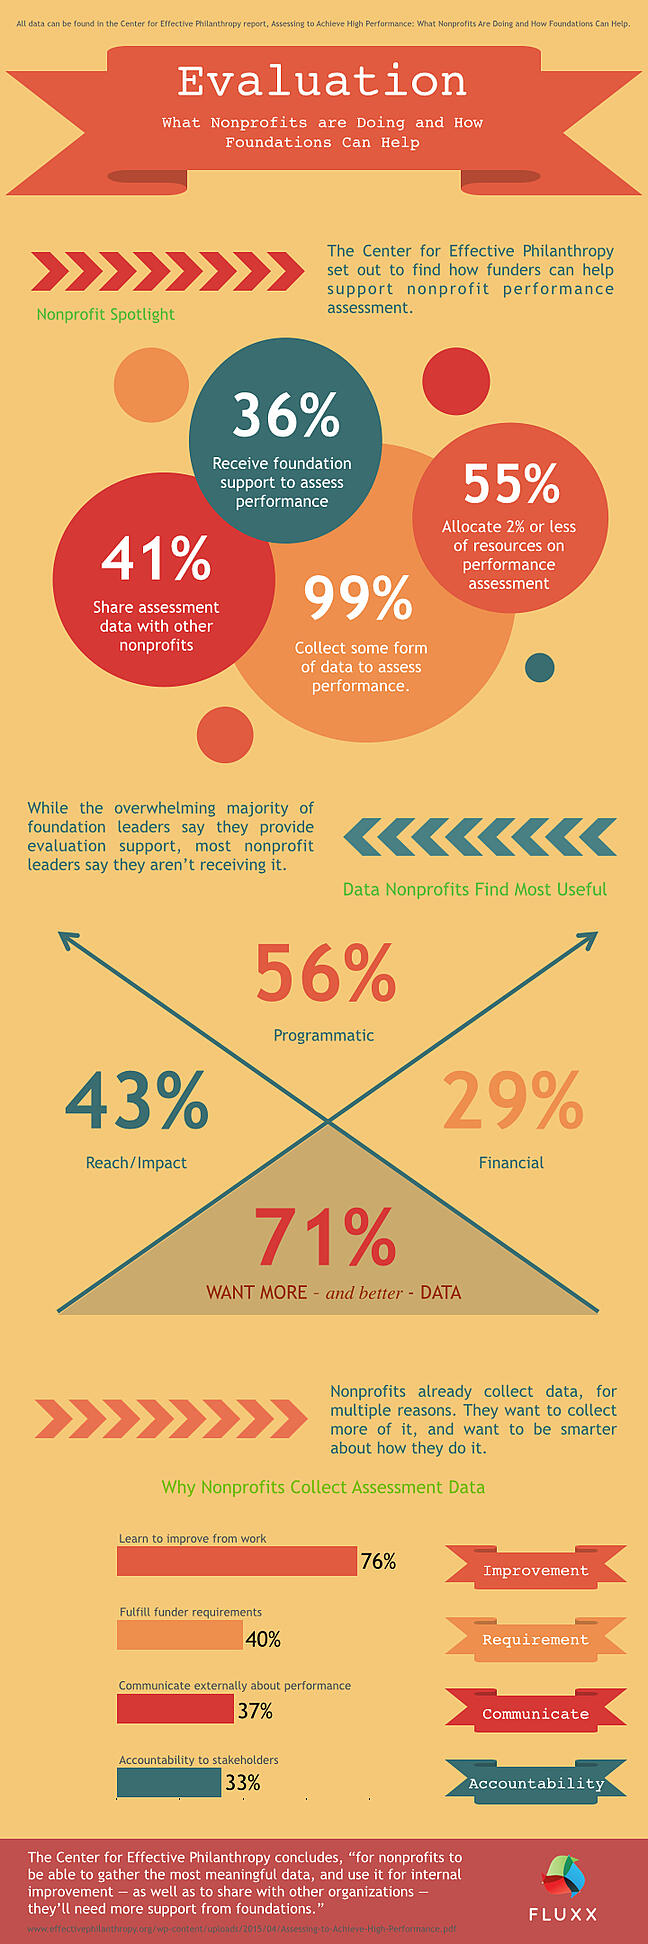 Funding Nonprofit Eval InfoGraphic.001